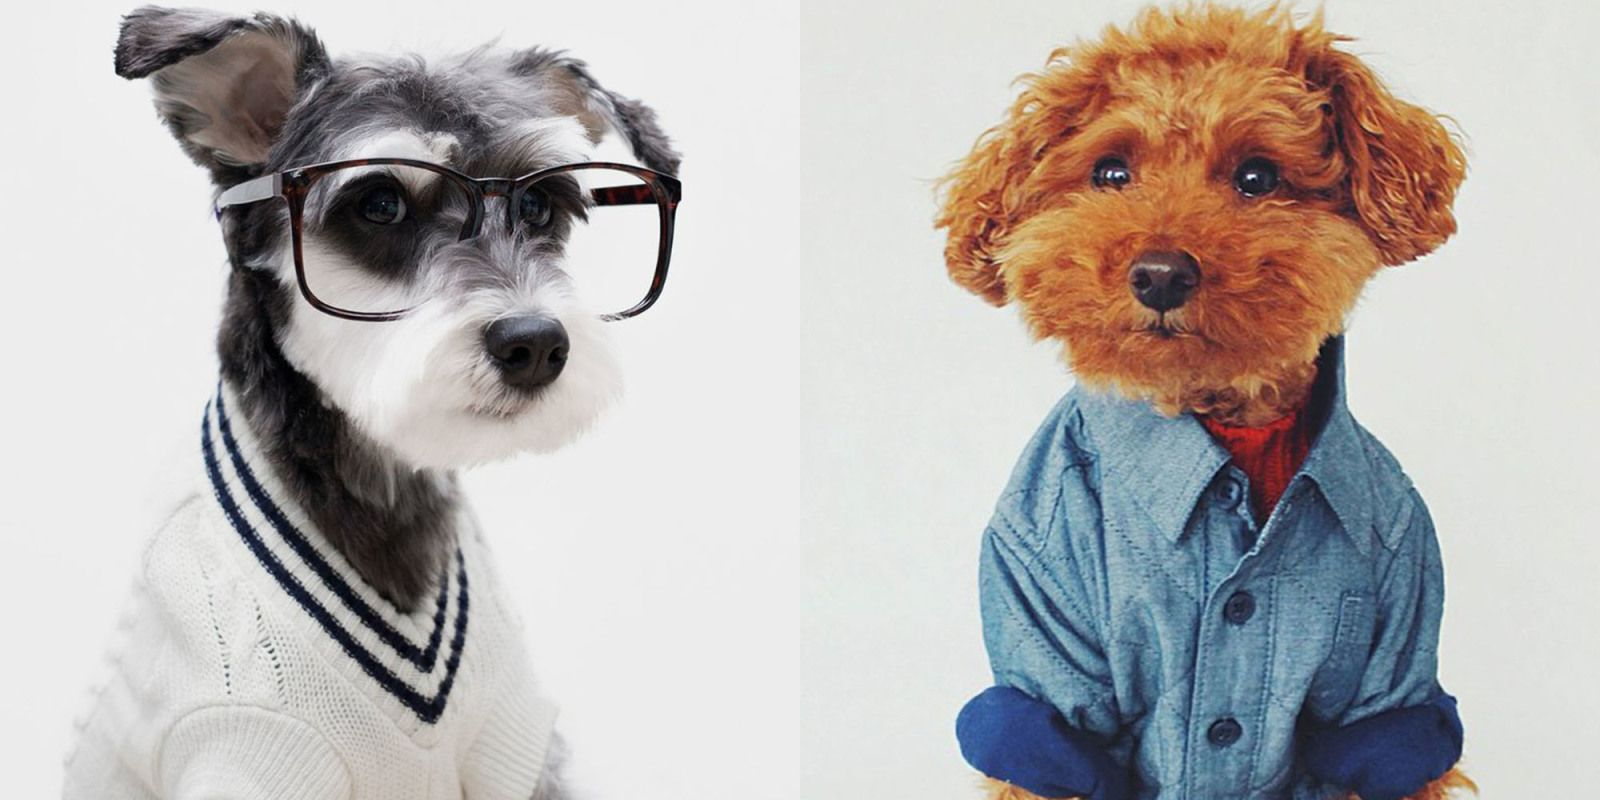 Mr porter taps stylish dogs of instagram for spring fashion tips